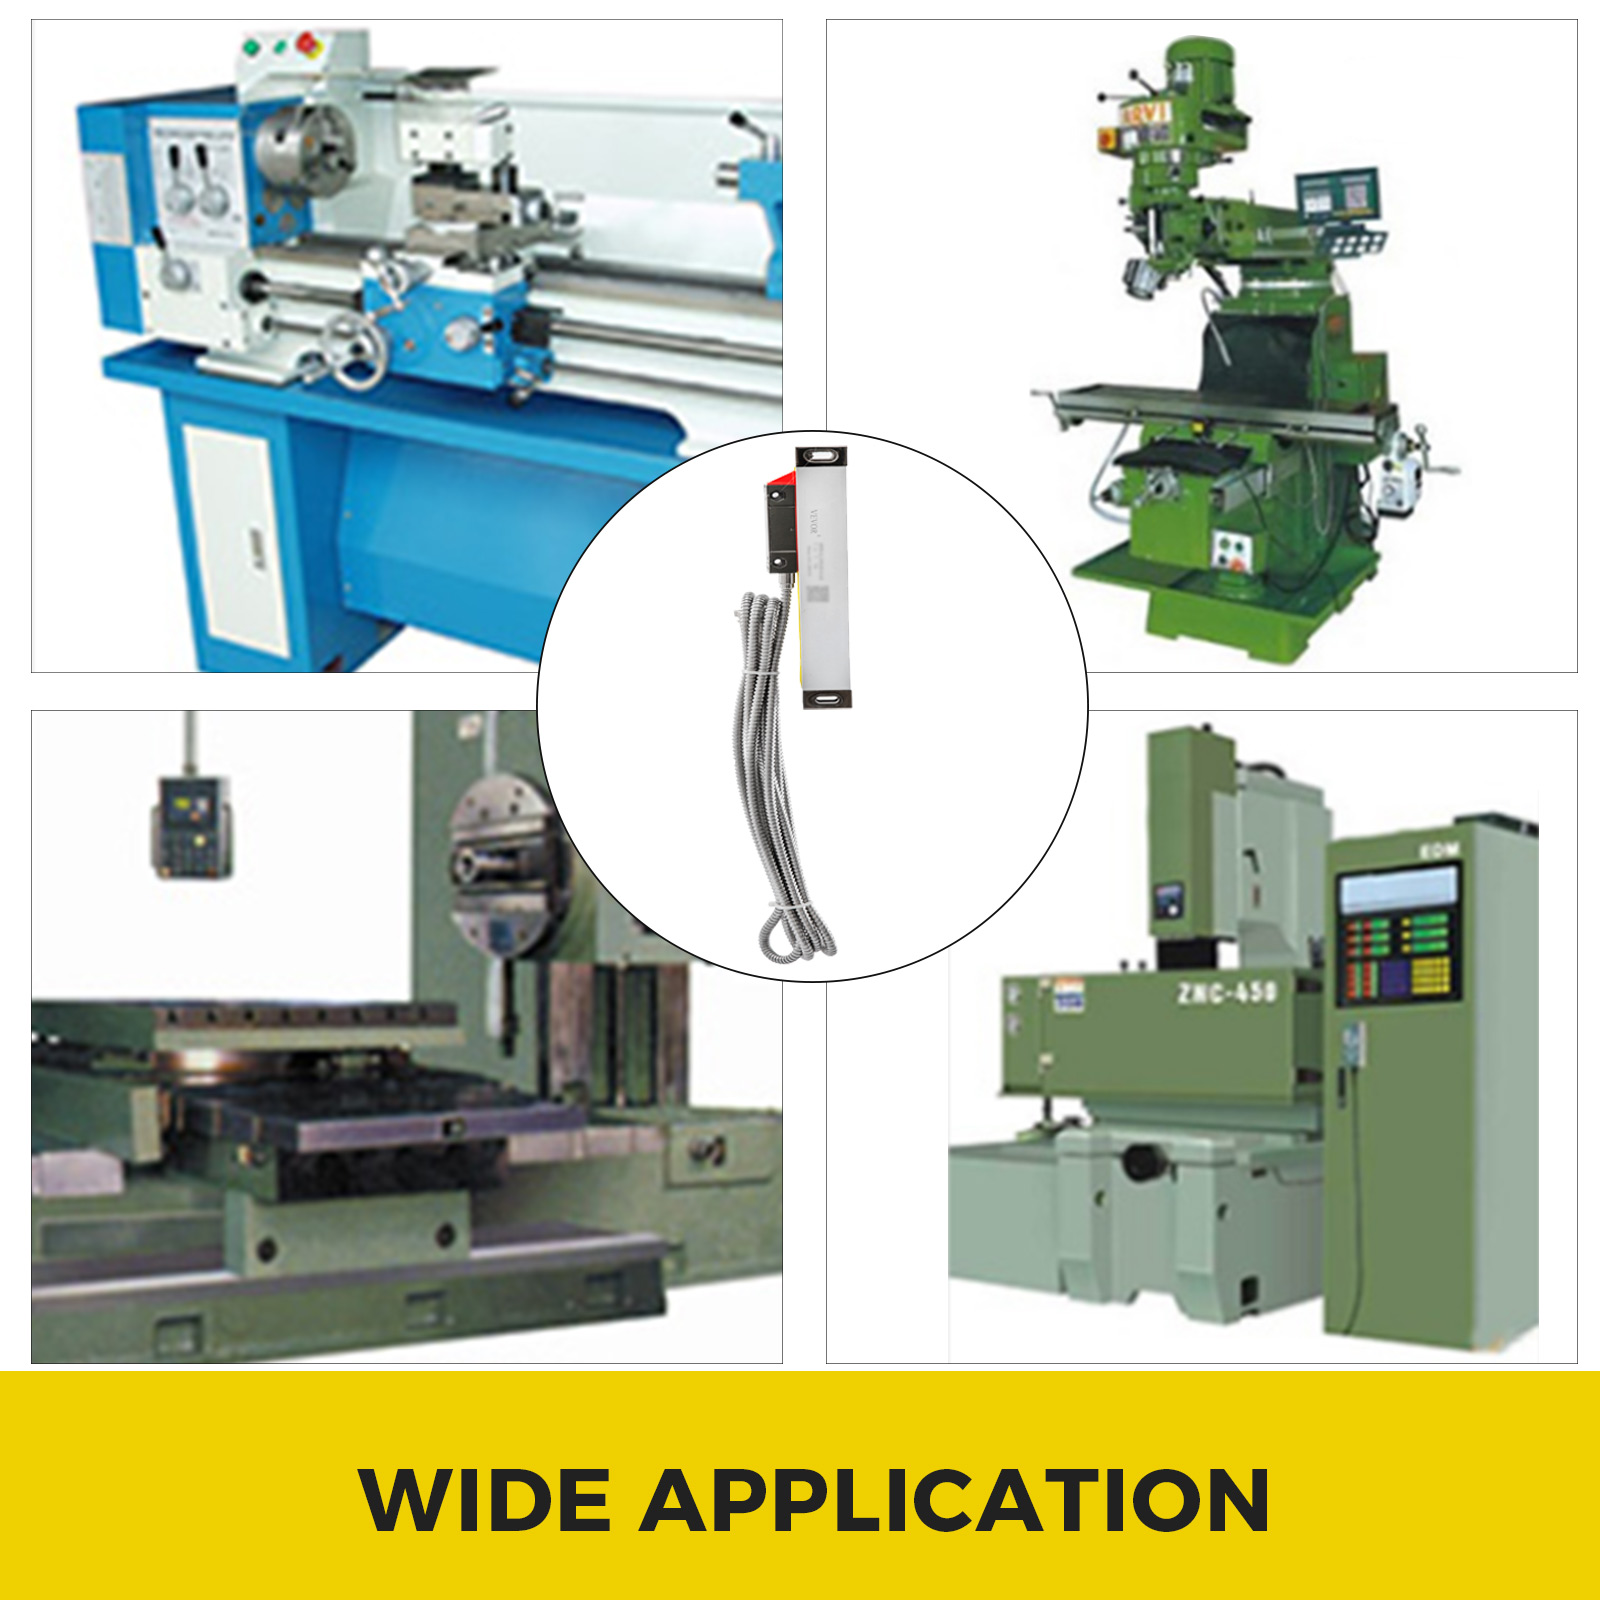 2-3-Axis-Digital-Readout-Linear-Scale-Double-Seal-5-Bearing-System-Grinding thumbnail 55